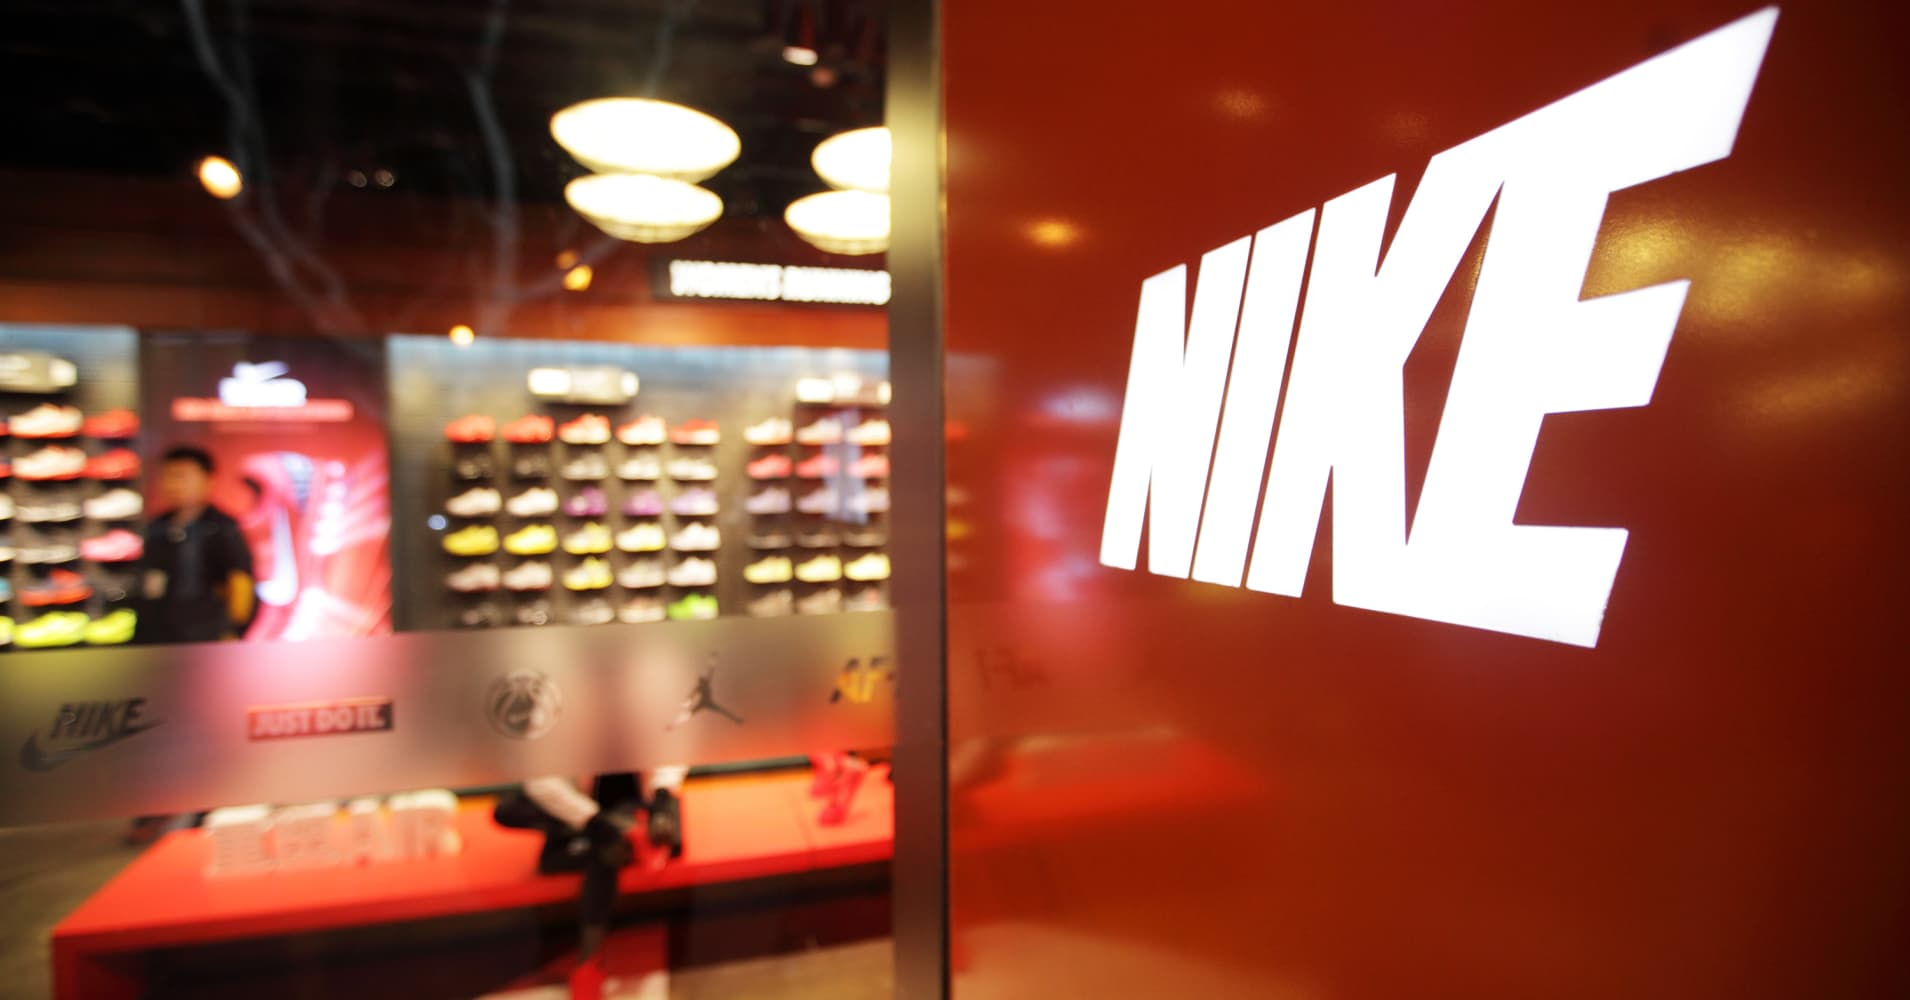 Second Nike exec leaves amid complaints about inappropriate conduct